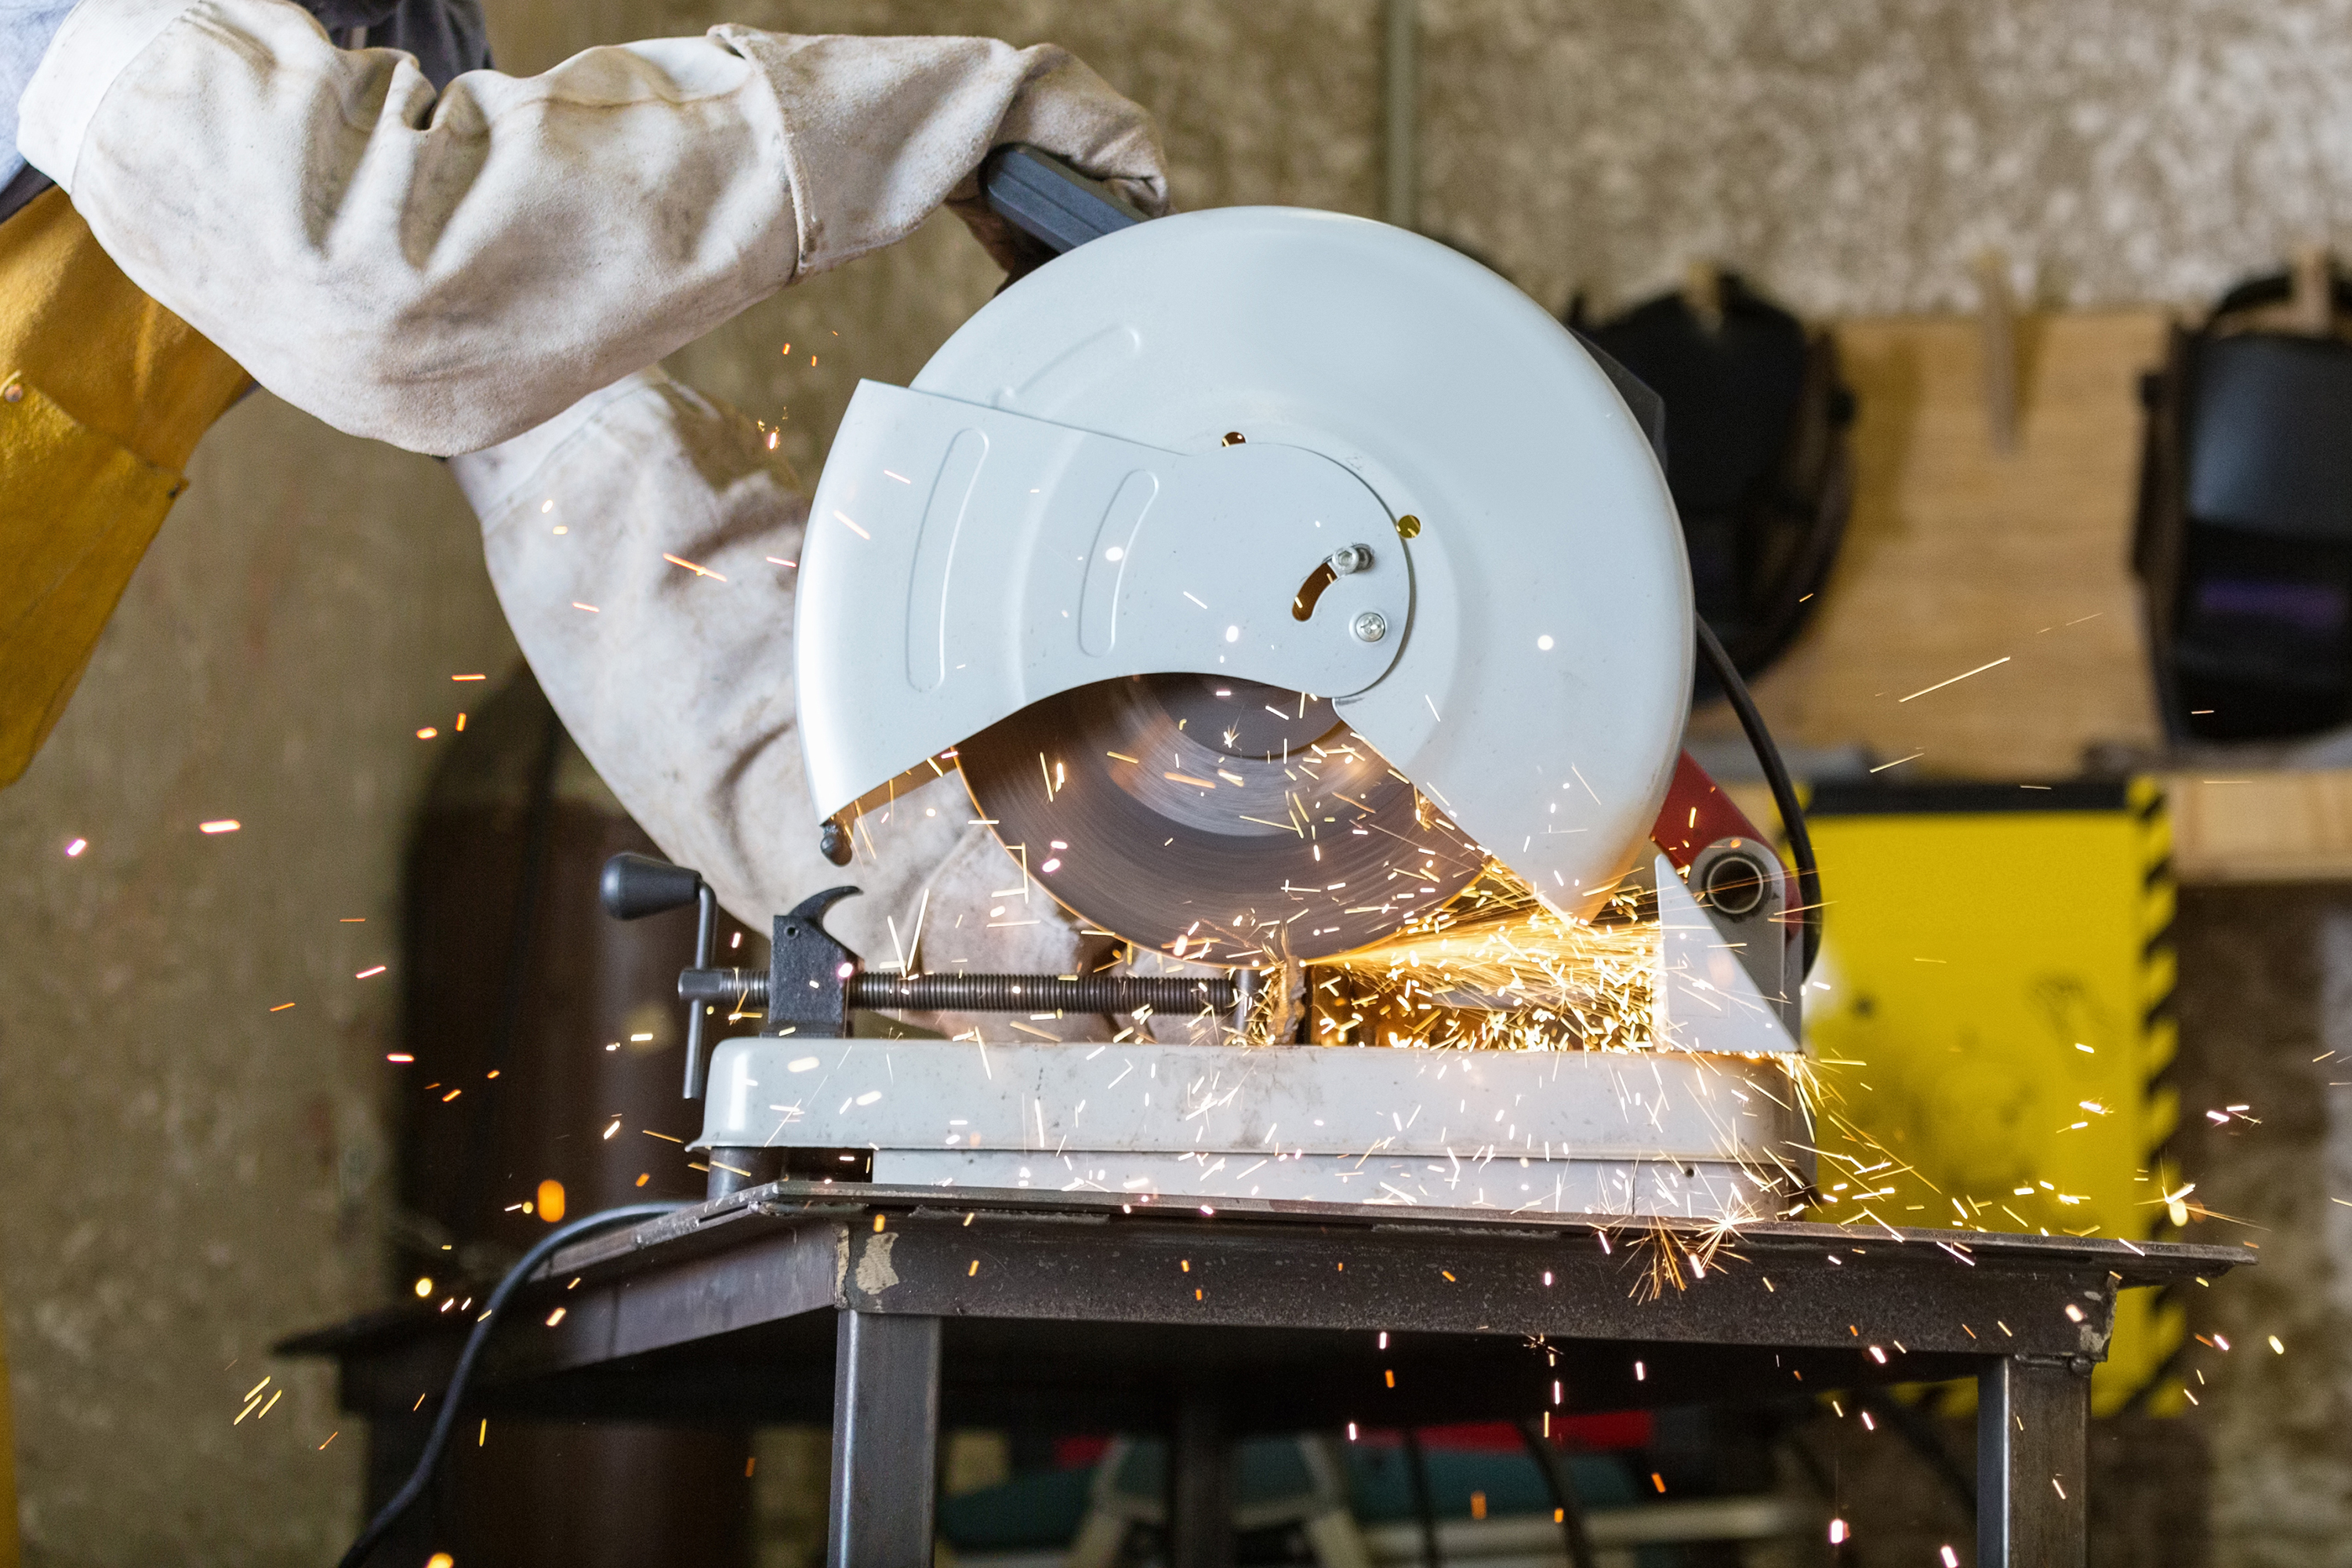 Man wearing protective clothing while using a table saw to cut metal.